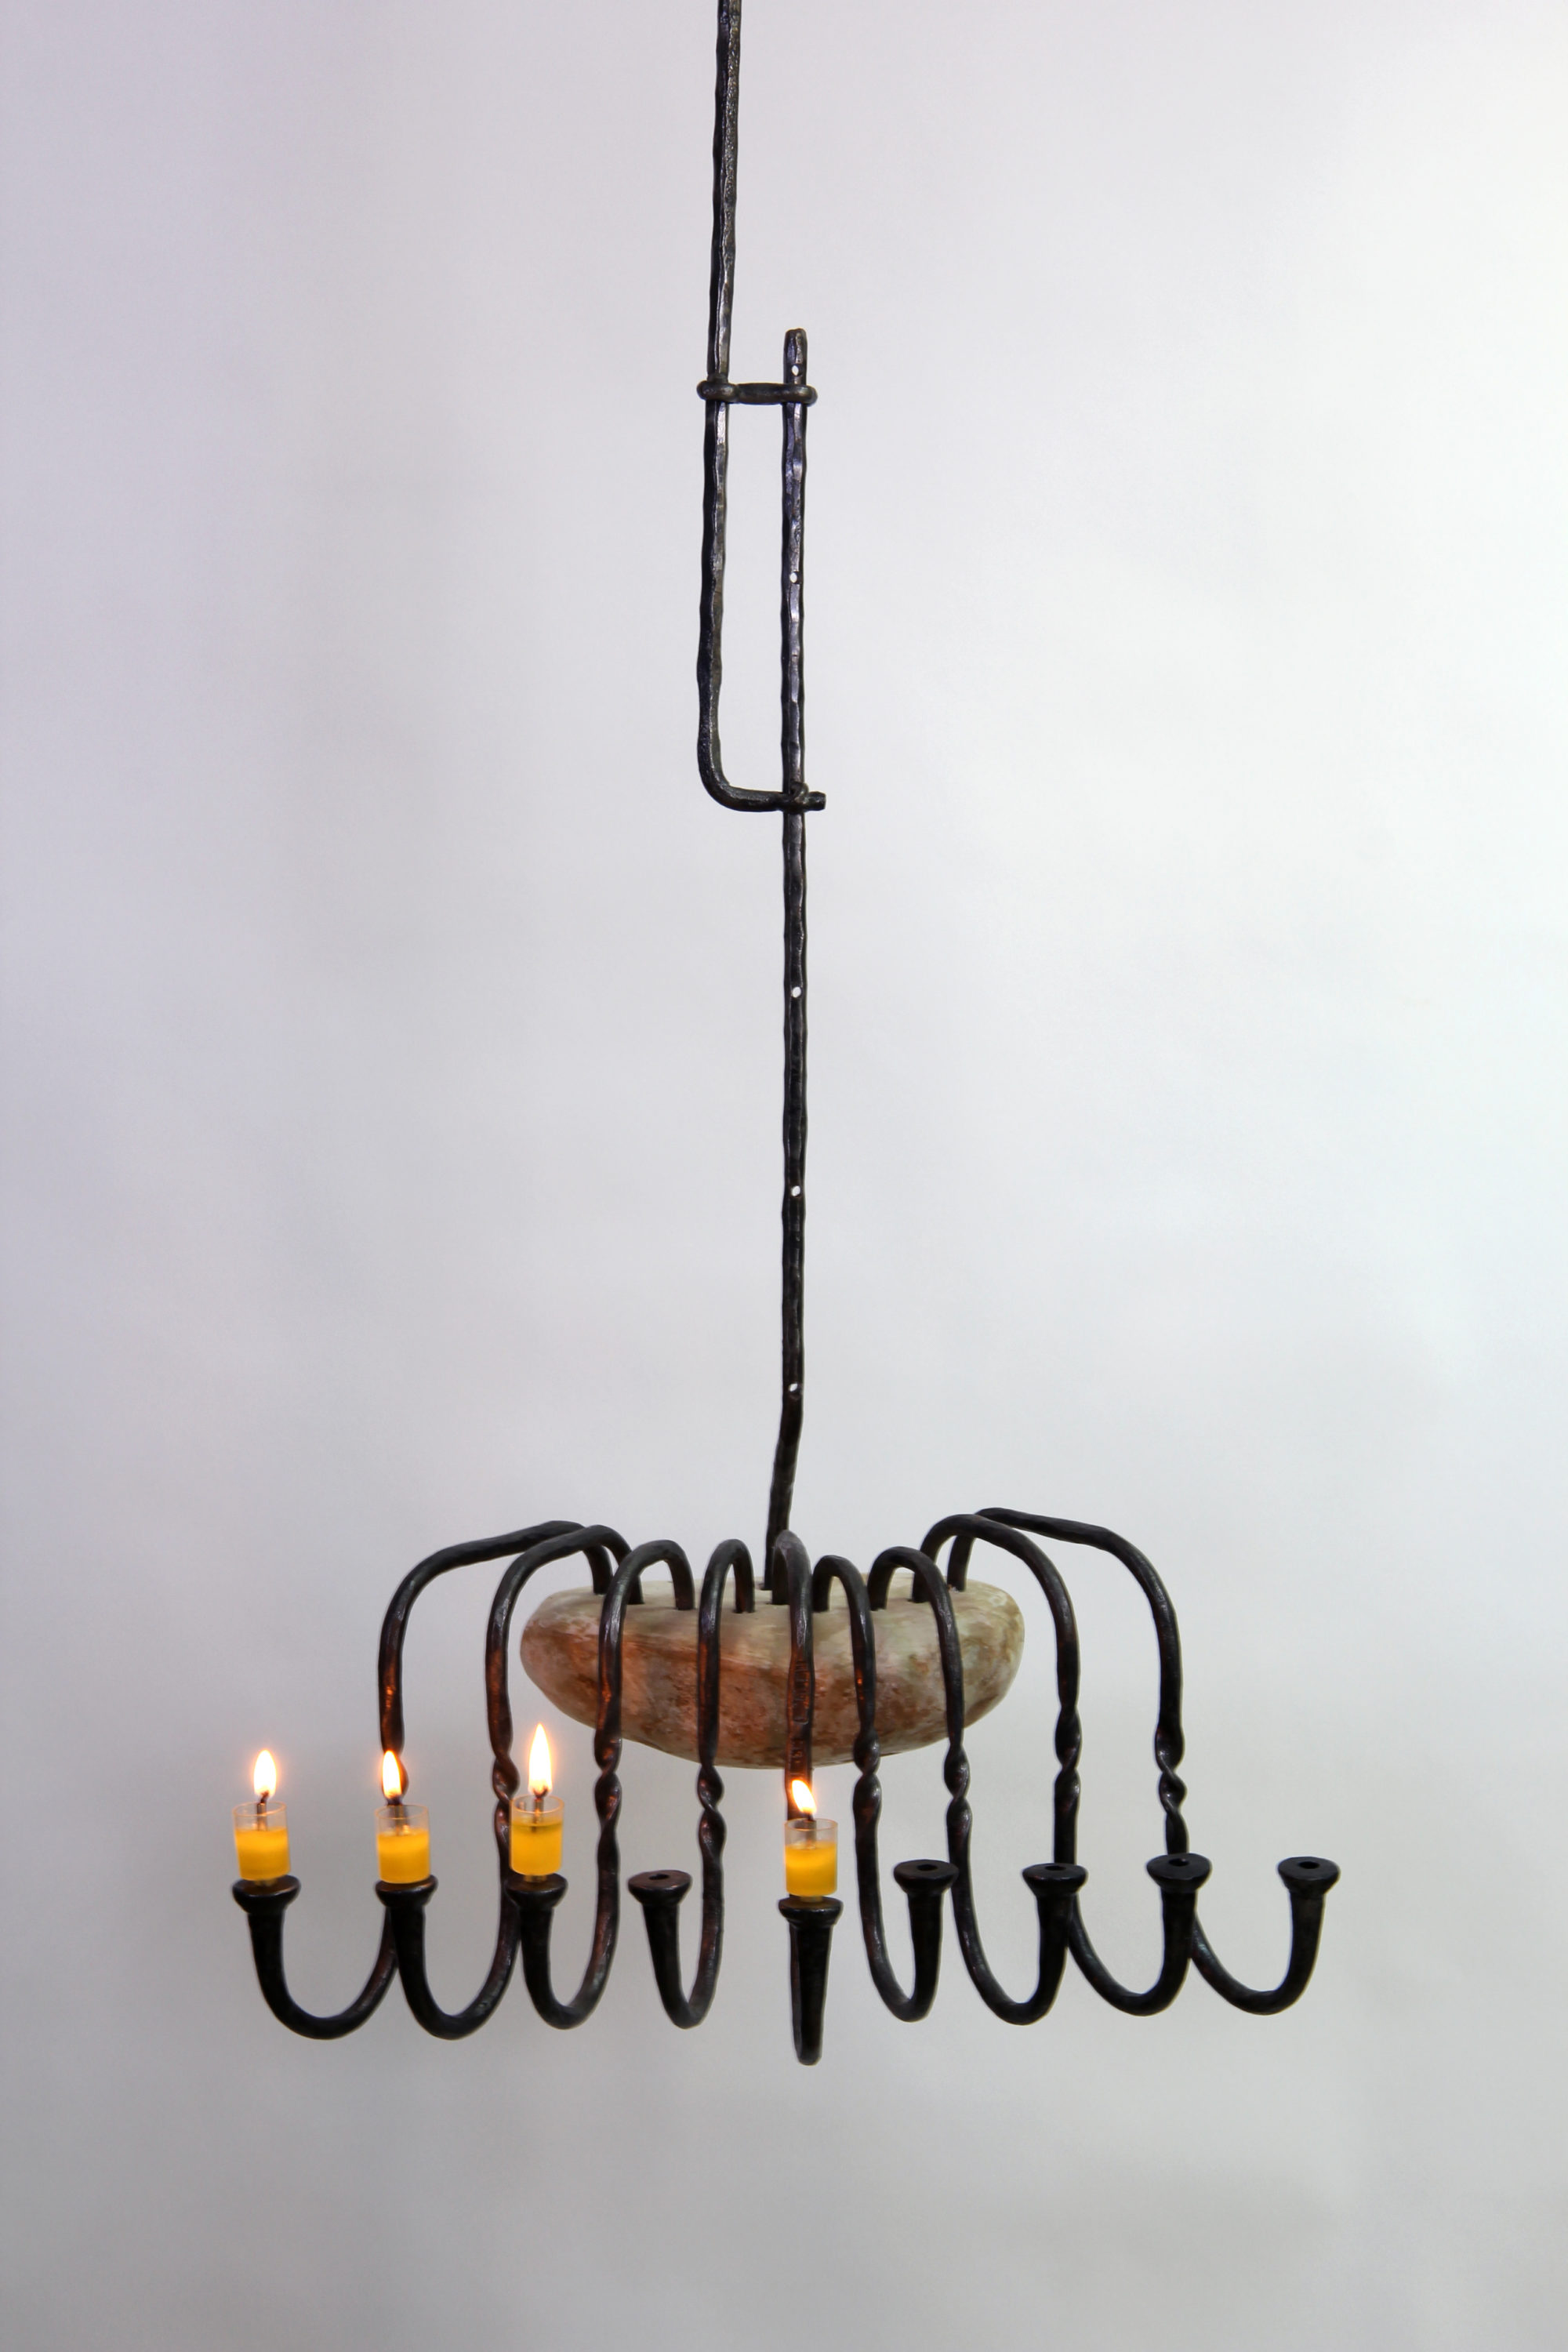 'Hanging Hanukah' - Large Hanging Hanucka Menorah of Iron & a large Pebble